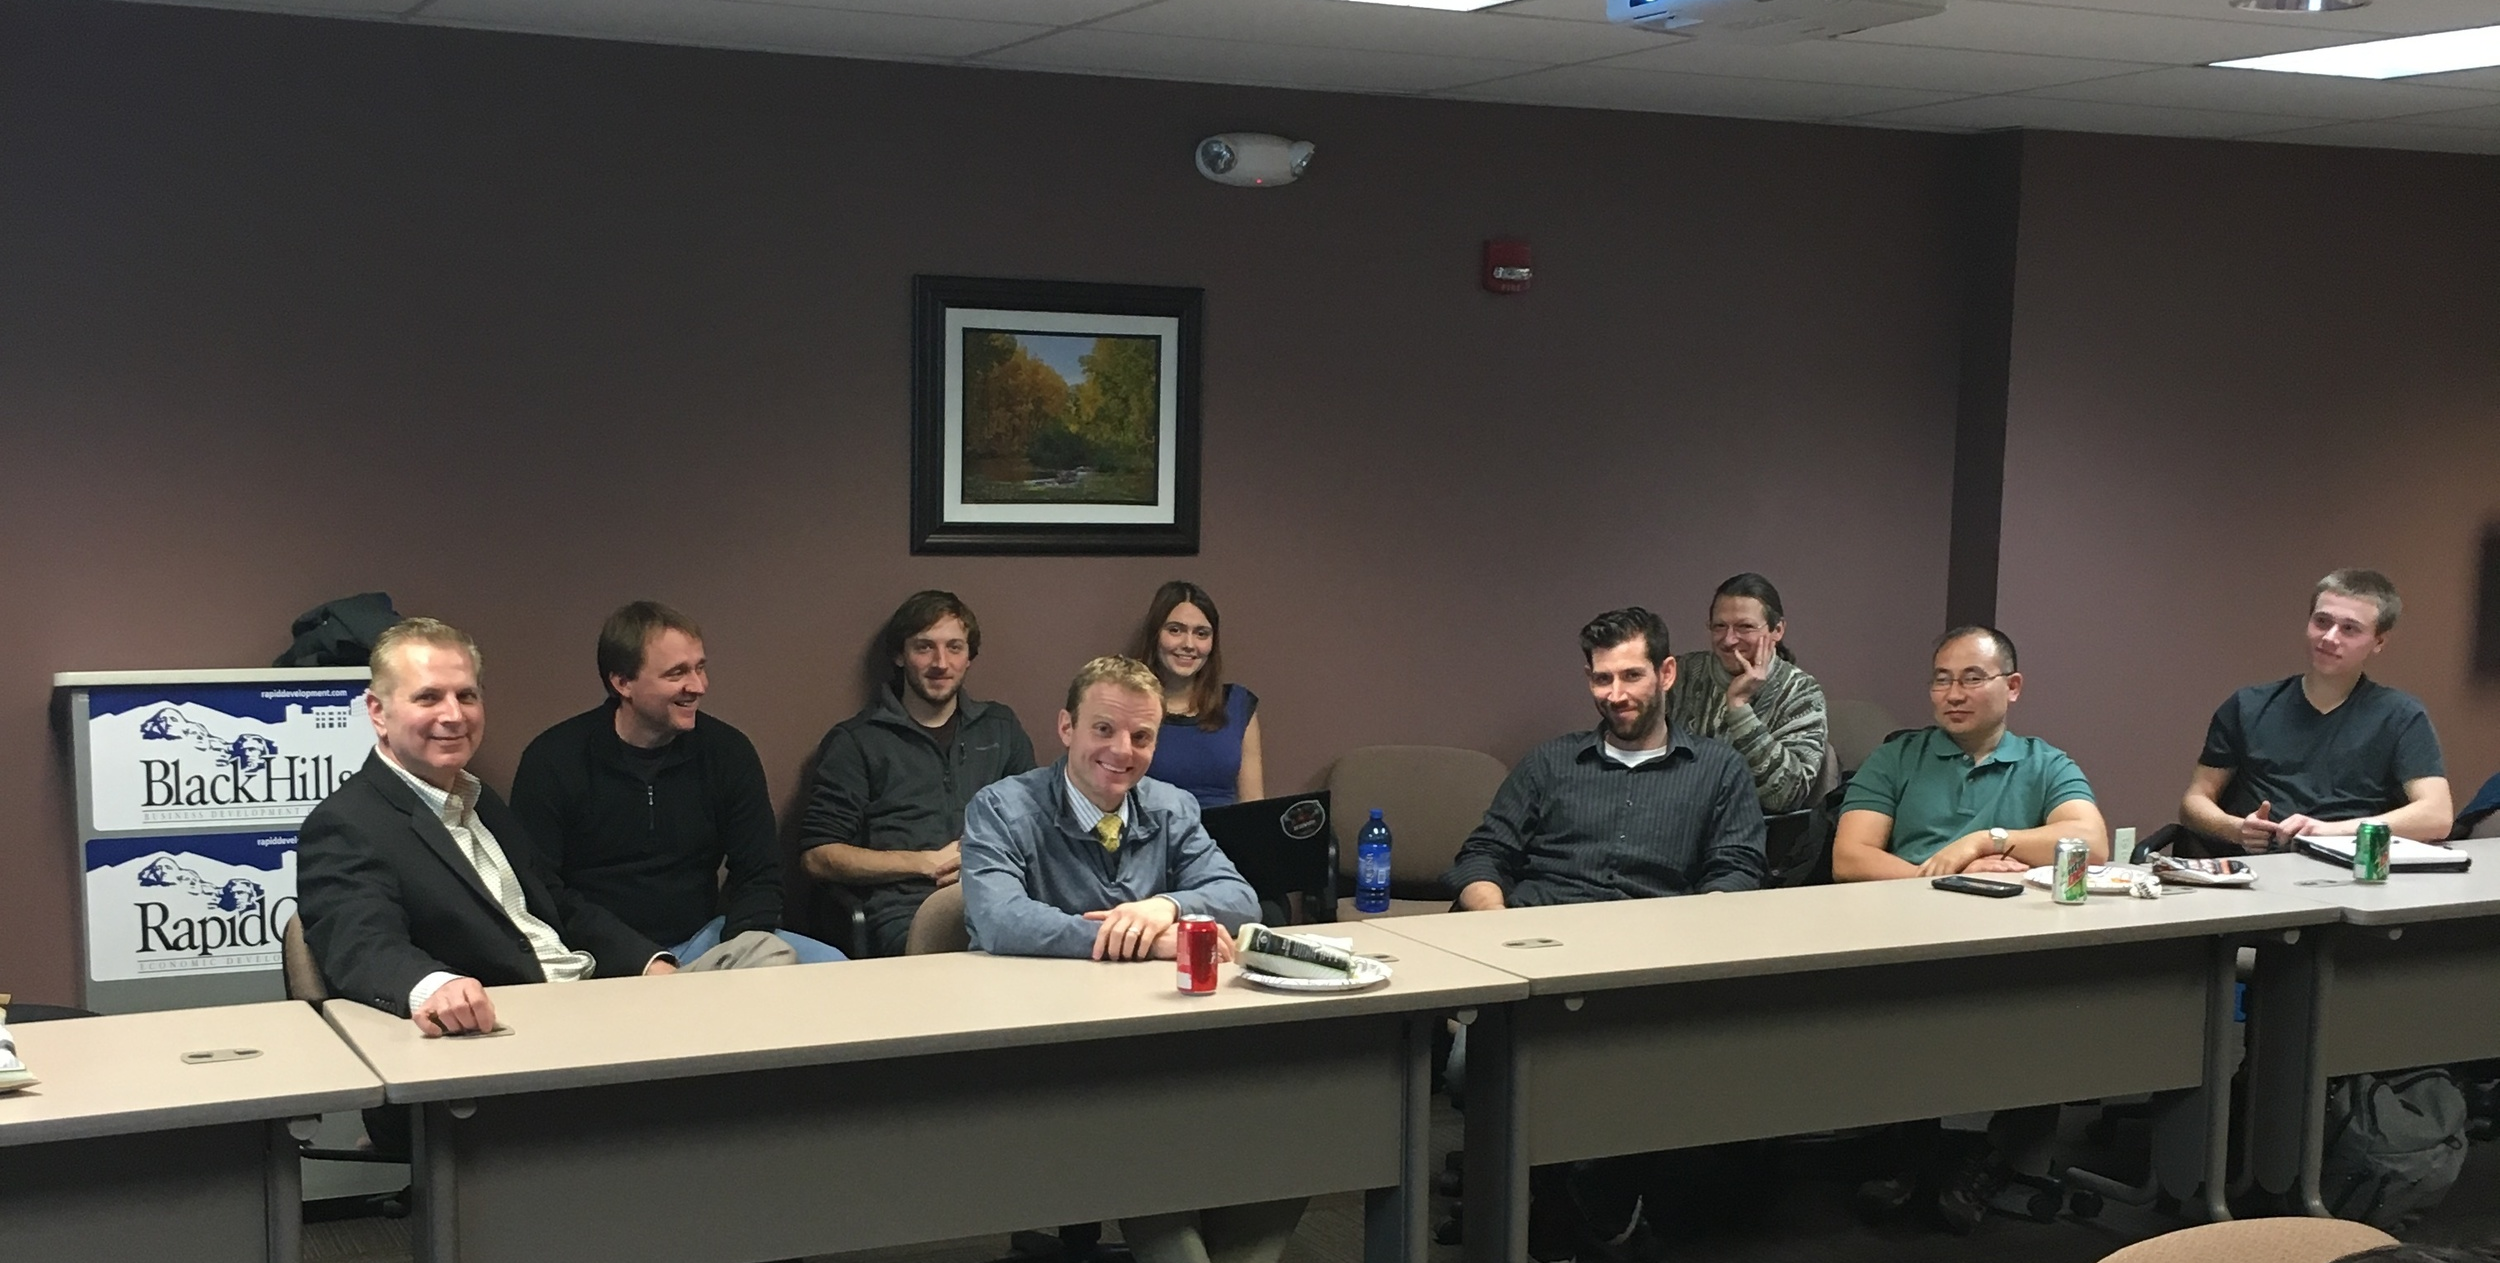 south-dakota-engineering-accelerator-giant-vision-lunch